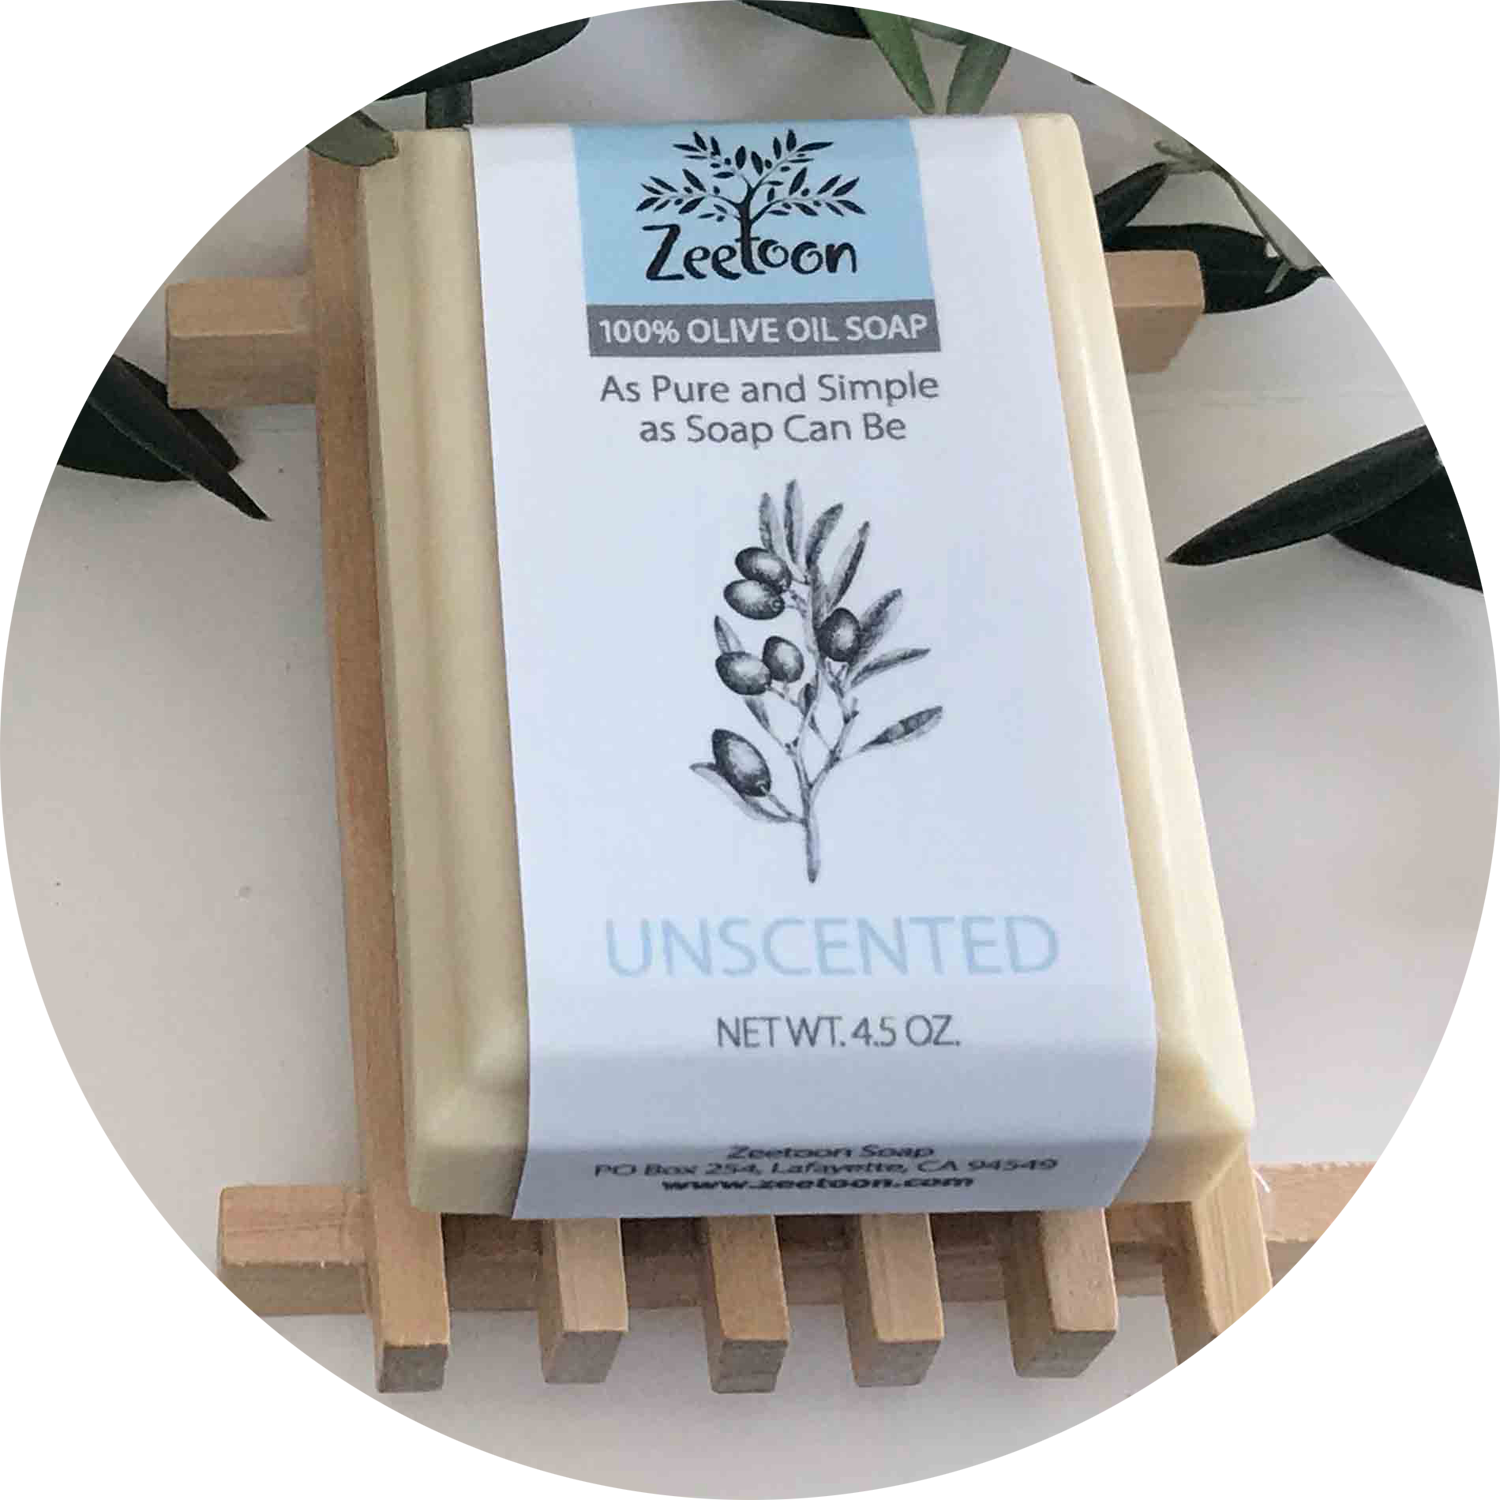 Zeetoon Unscented 100% Olive Oil Soap is our most popular soap